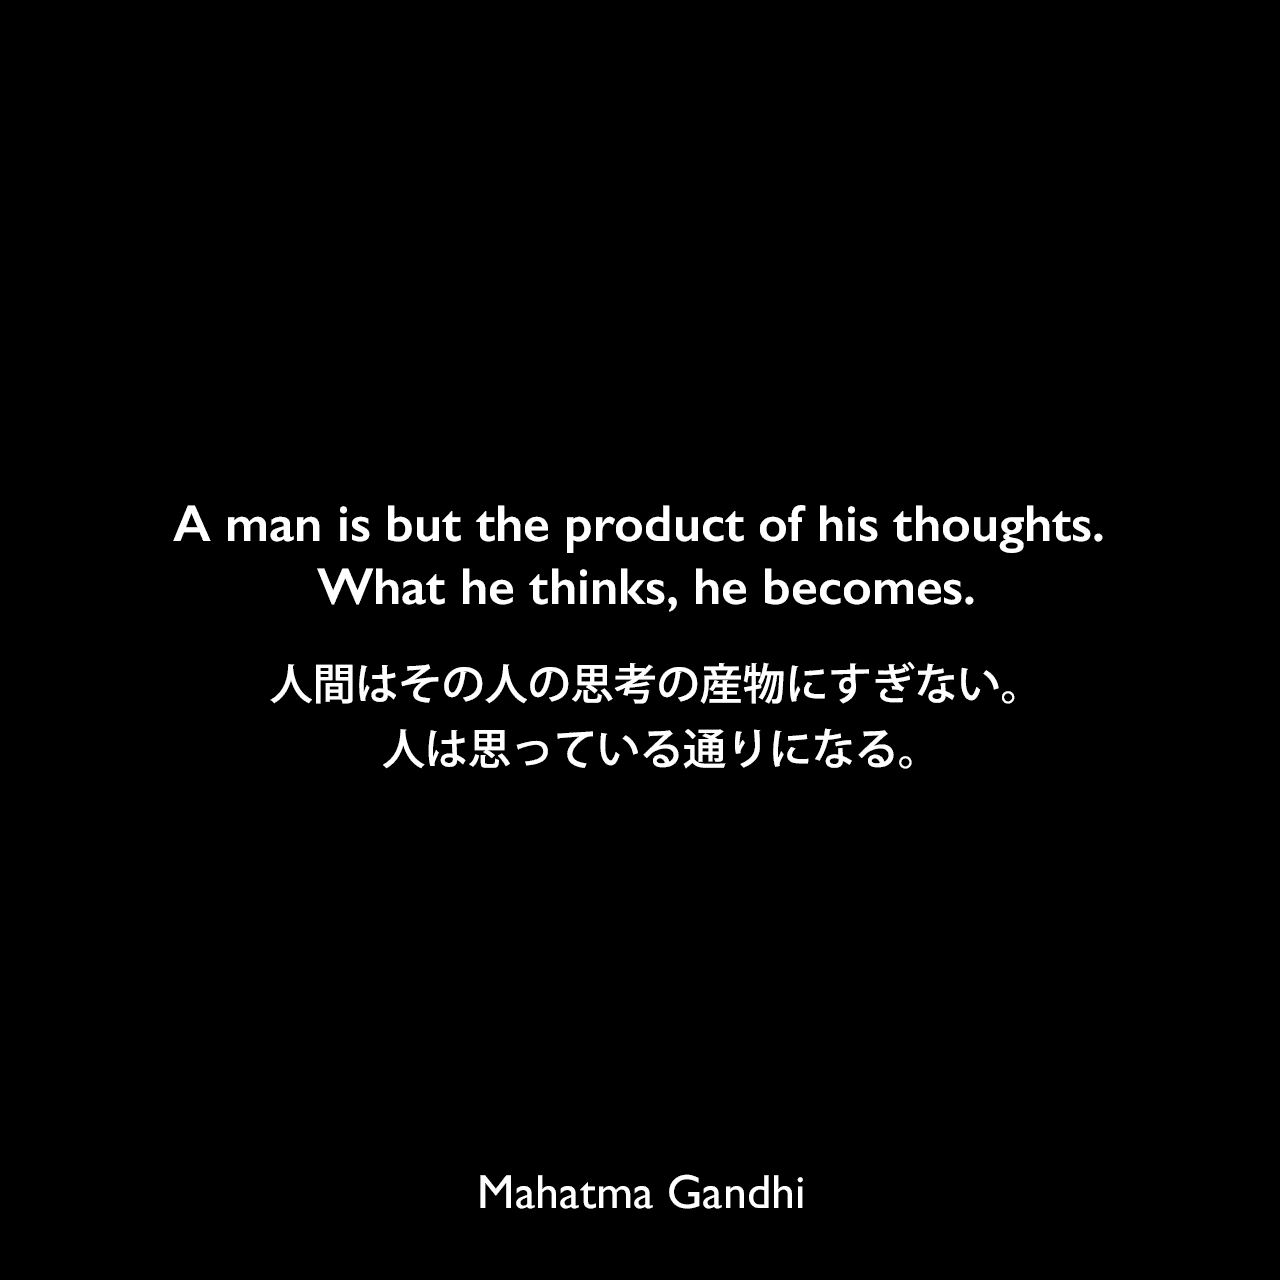 A man is but the product of his thoughts. What he thinks, he becomes.人間はその人の思考の産物にすぎない。 人は思っている通りになる。Mahatma Gandhi